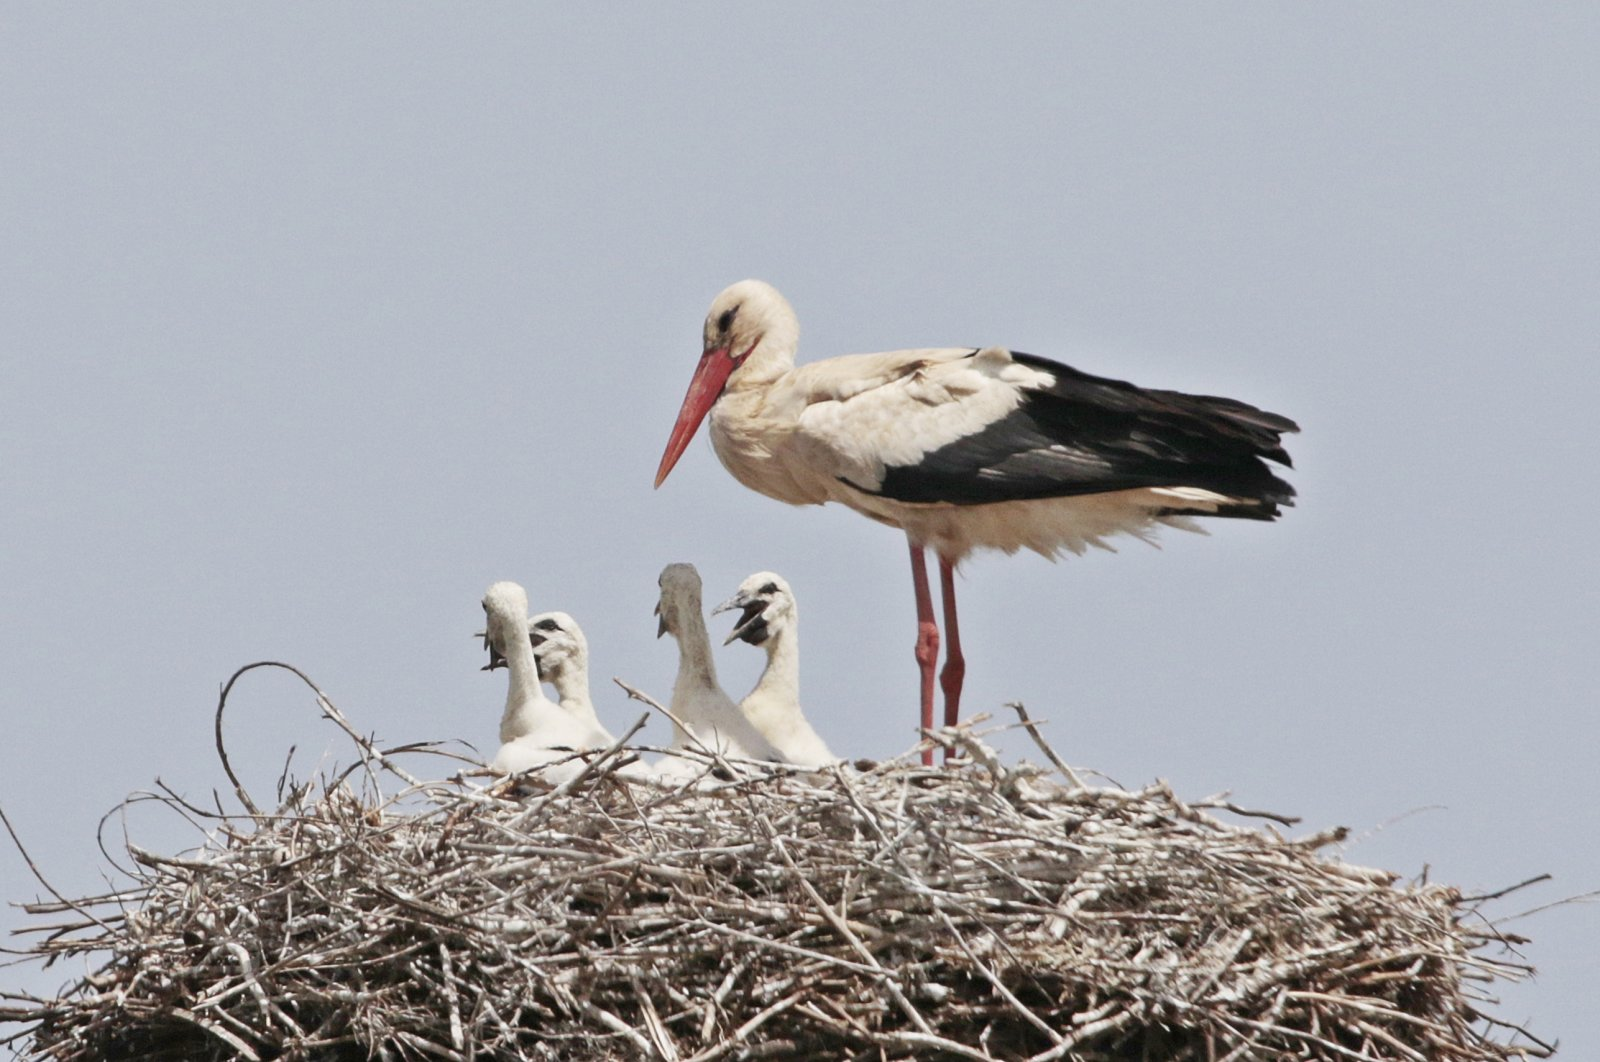 A white stork is seen with its young in Diyarbakır, Turkey, May 19, 2020. (DHA Photo)